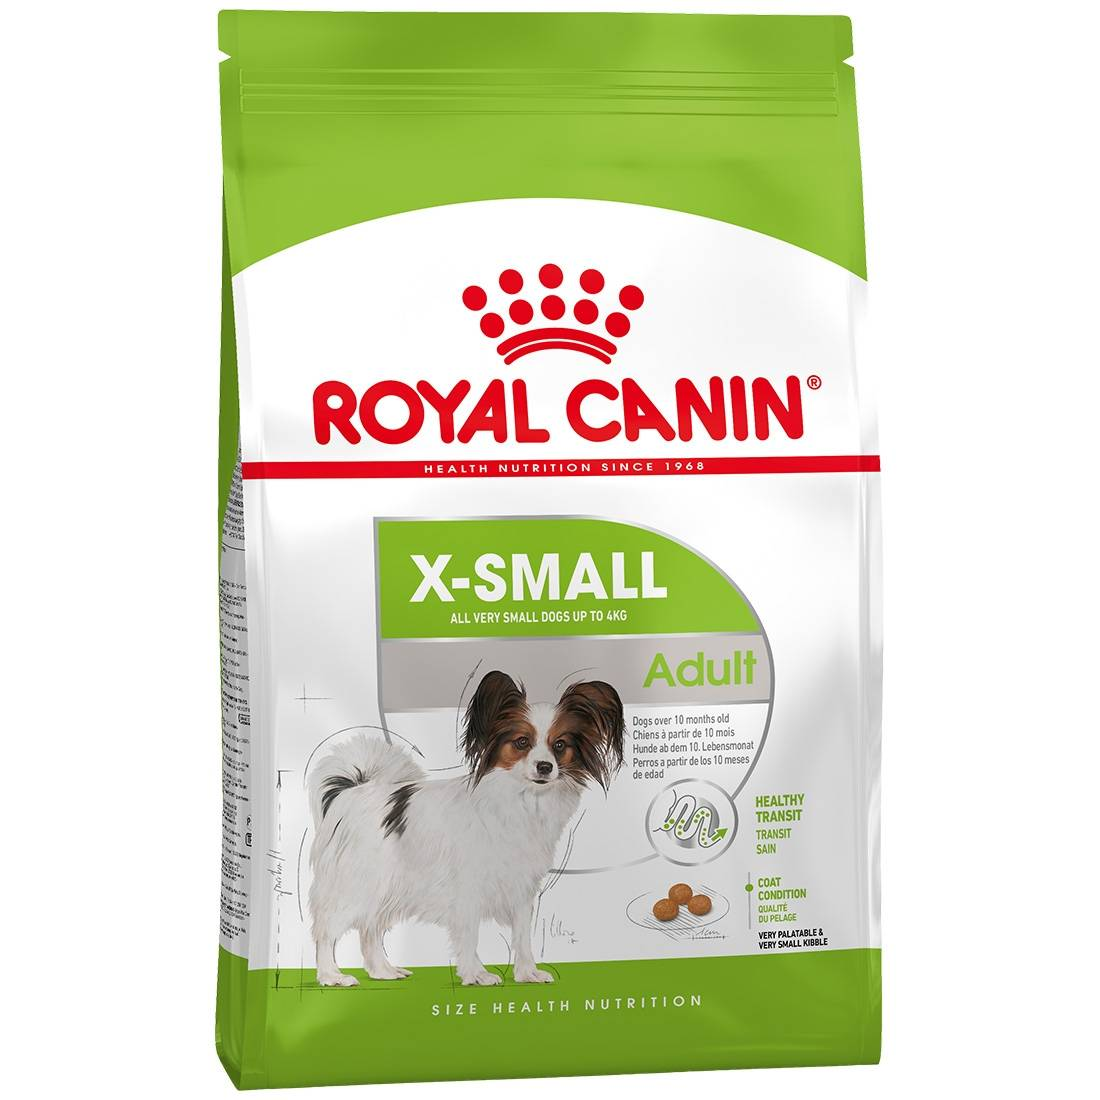 Royal Canin Croquettes pour chien Royal Canin X-SMALL Adult Contenance : 500 g